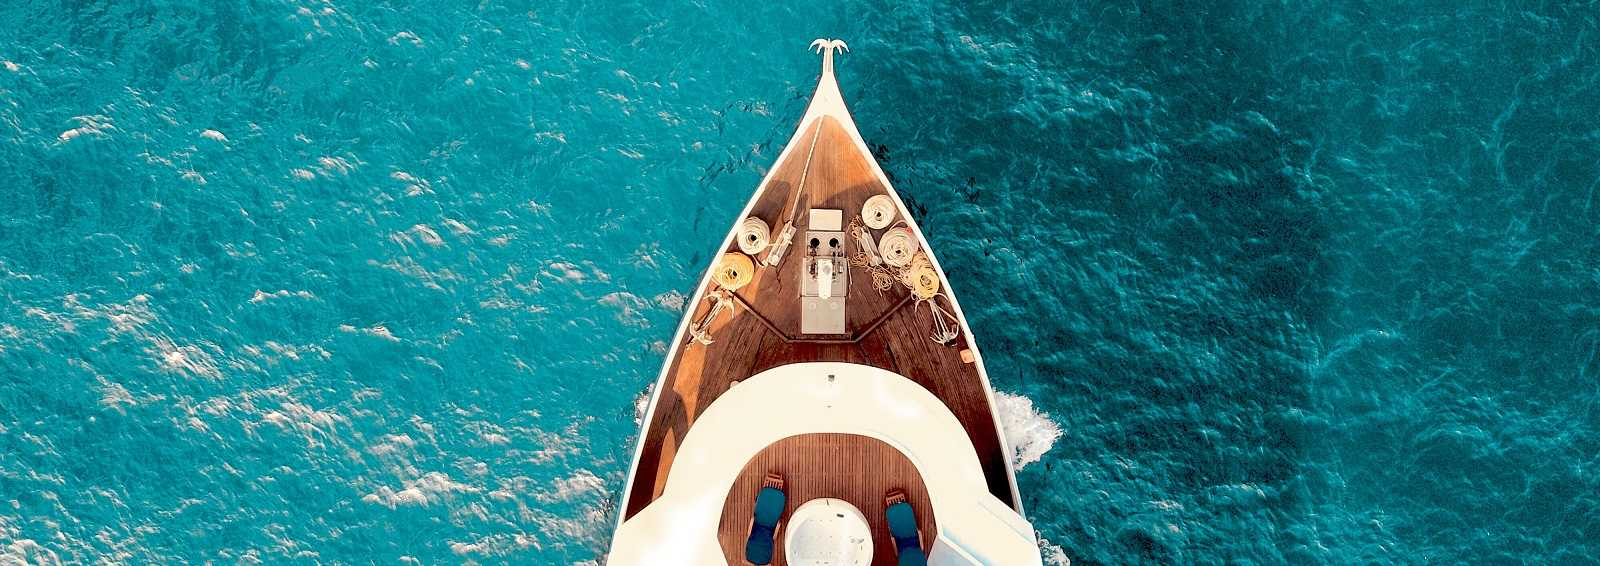 Luxury Expedition Ship